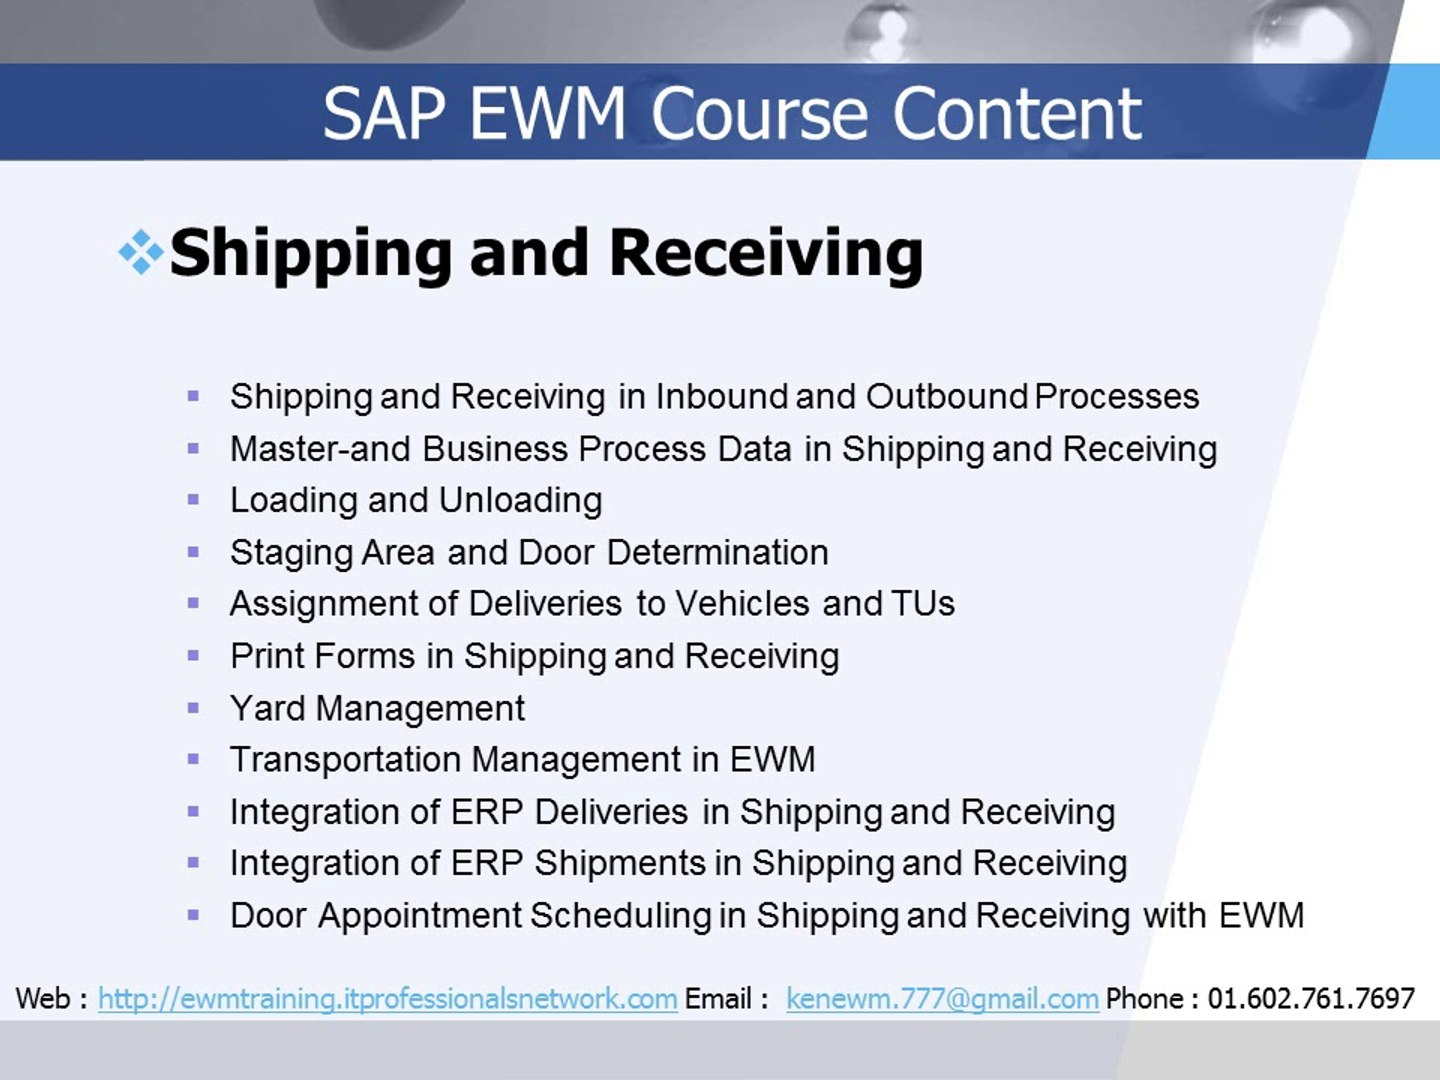 SAP EWM Training | SAP EWM Course | SAP EWM Training Online